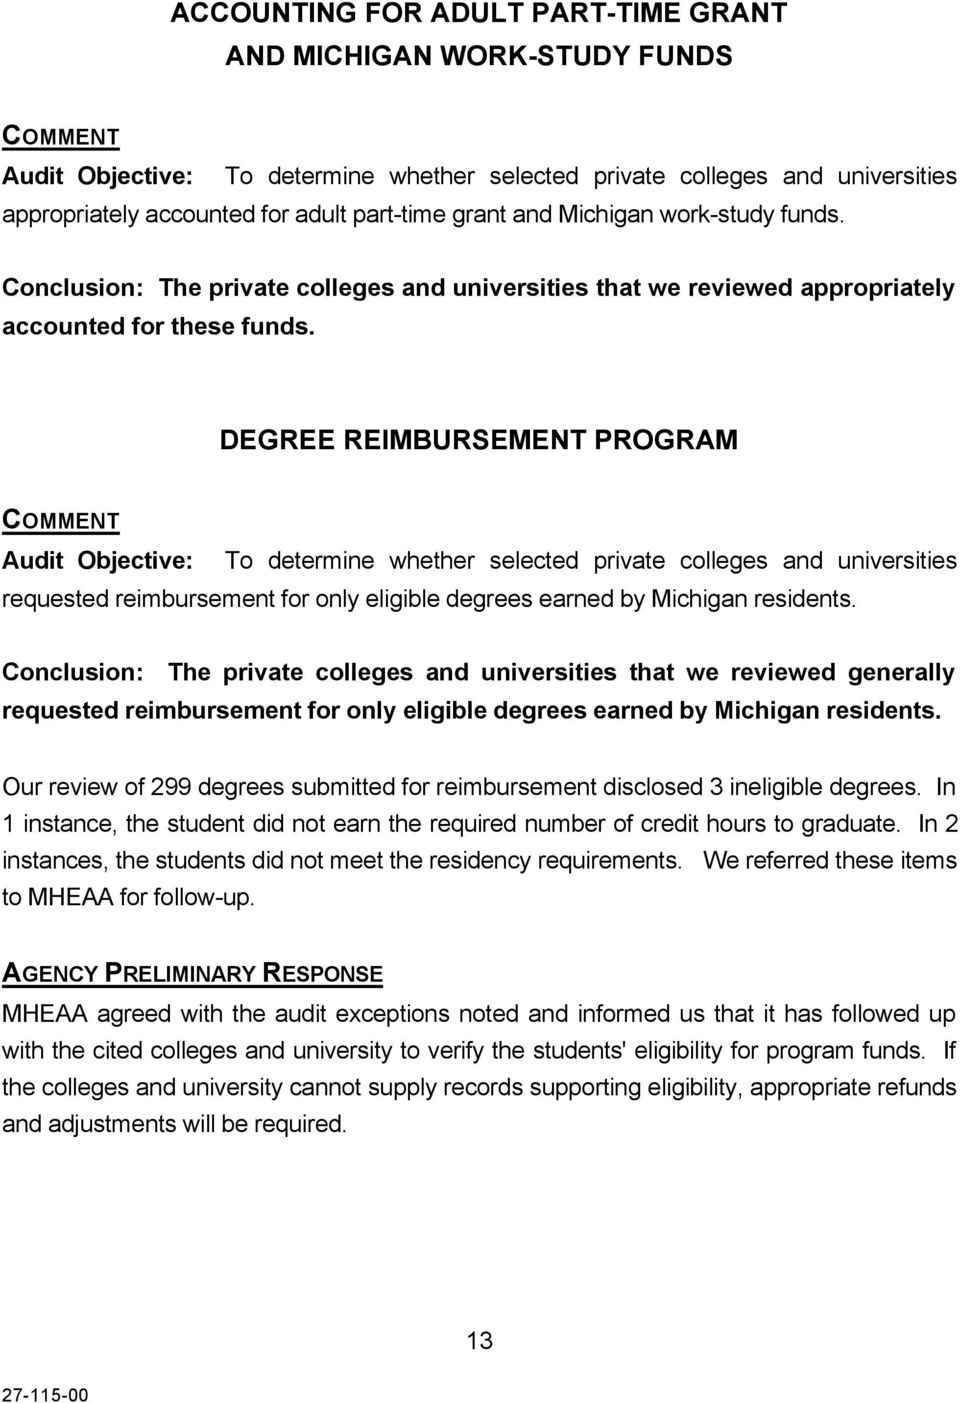 DEGREE REIMBURSEMENT PROGRAM COMMENT Audit Objective: To determine whether selected private colleges and universities requested reimbursement for only eligible degrees earned by Michigan residents.